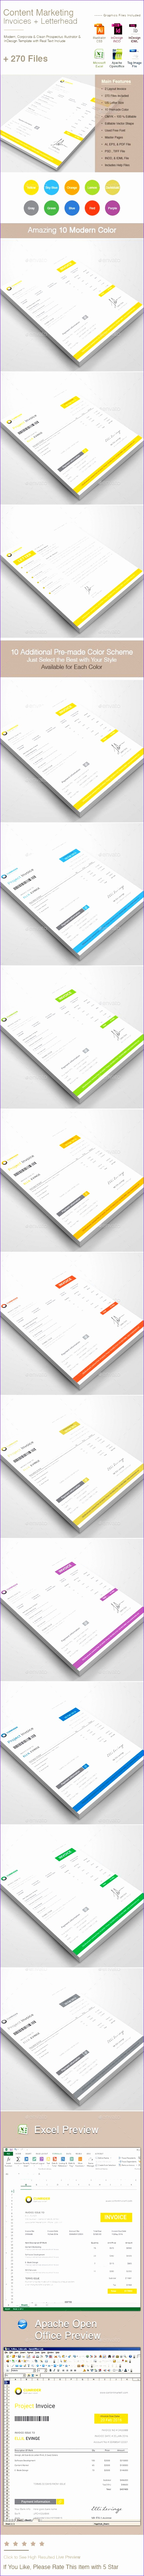 564e93ed4ac505ac2b e3e90e10e letterhead template simple shapes